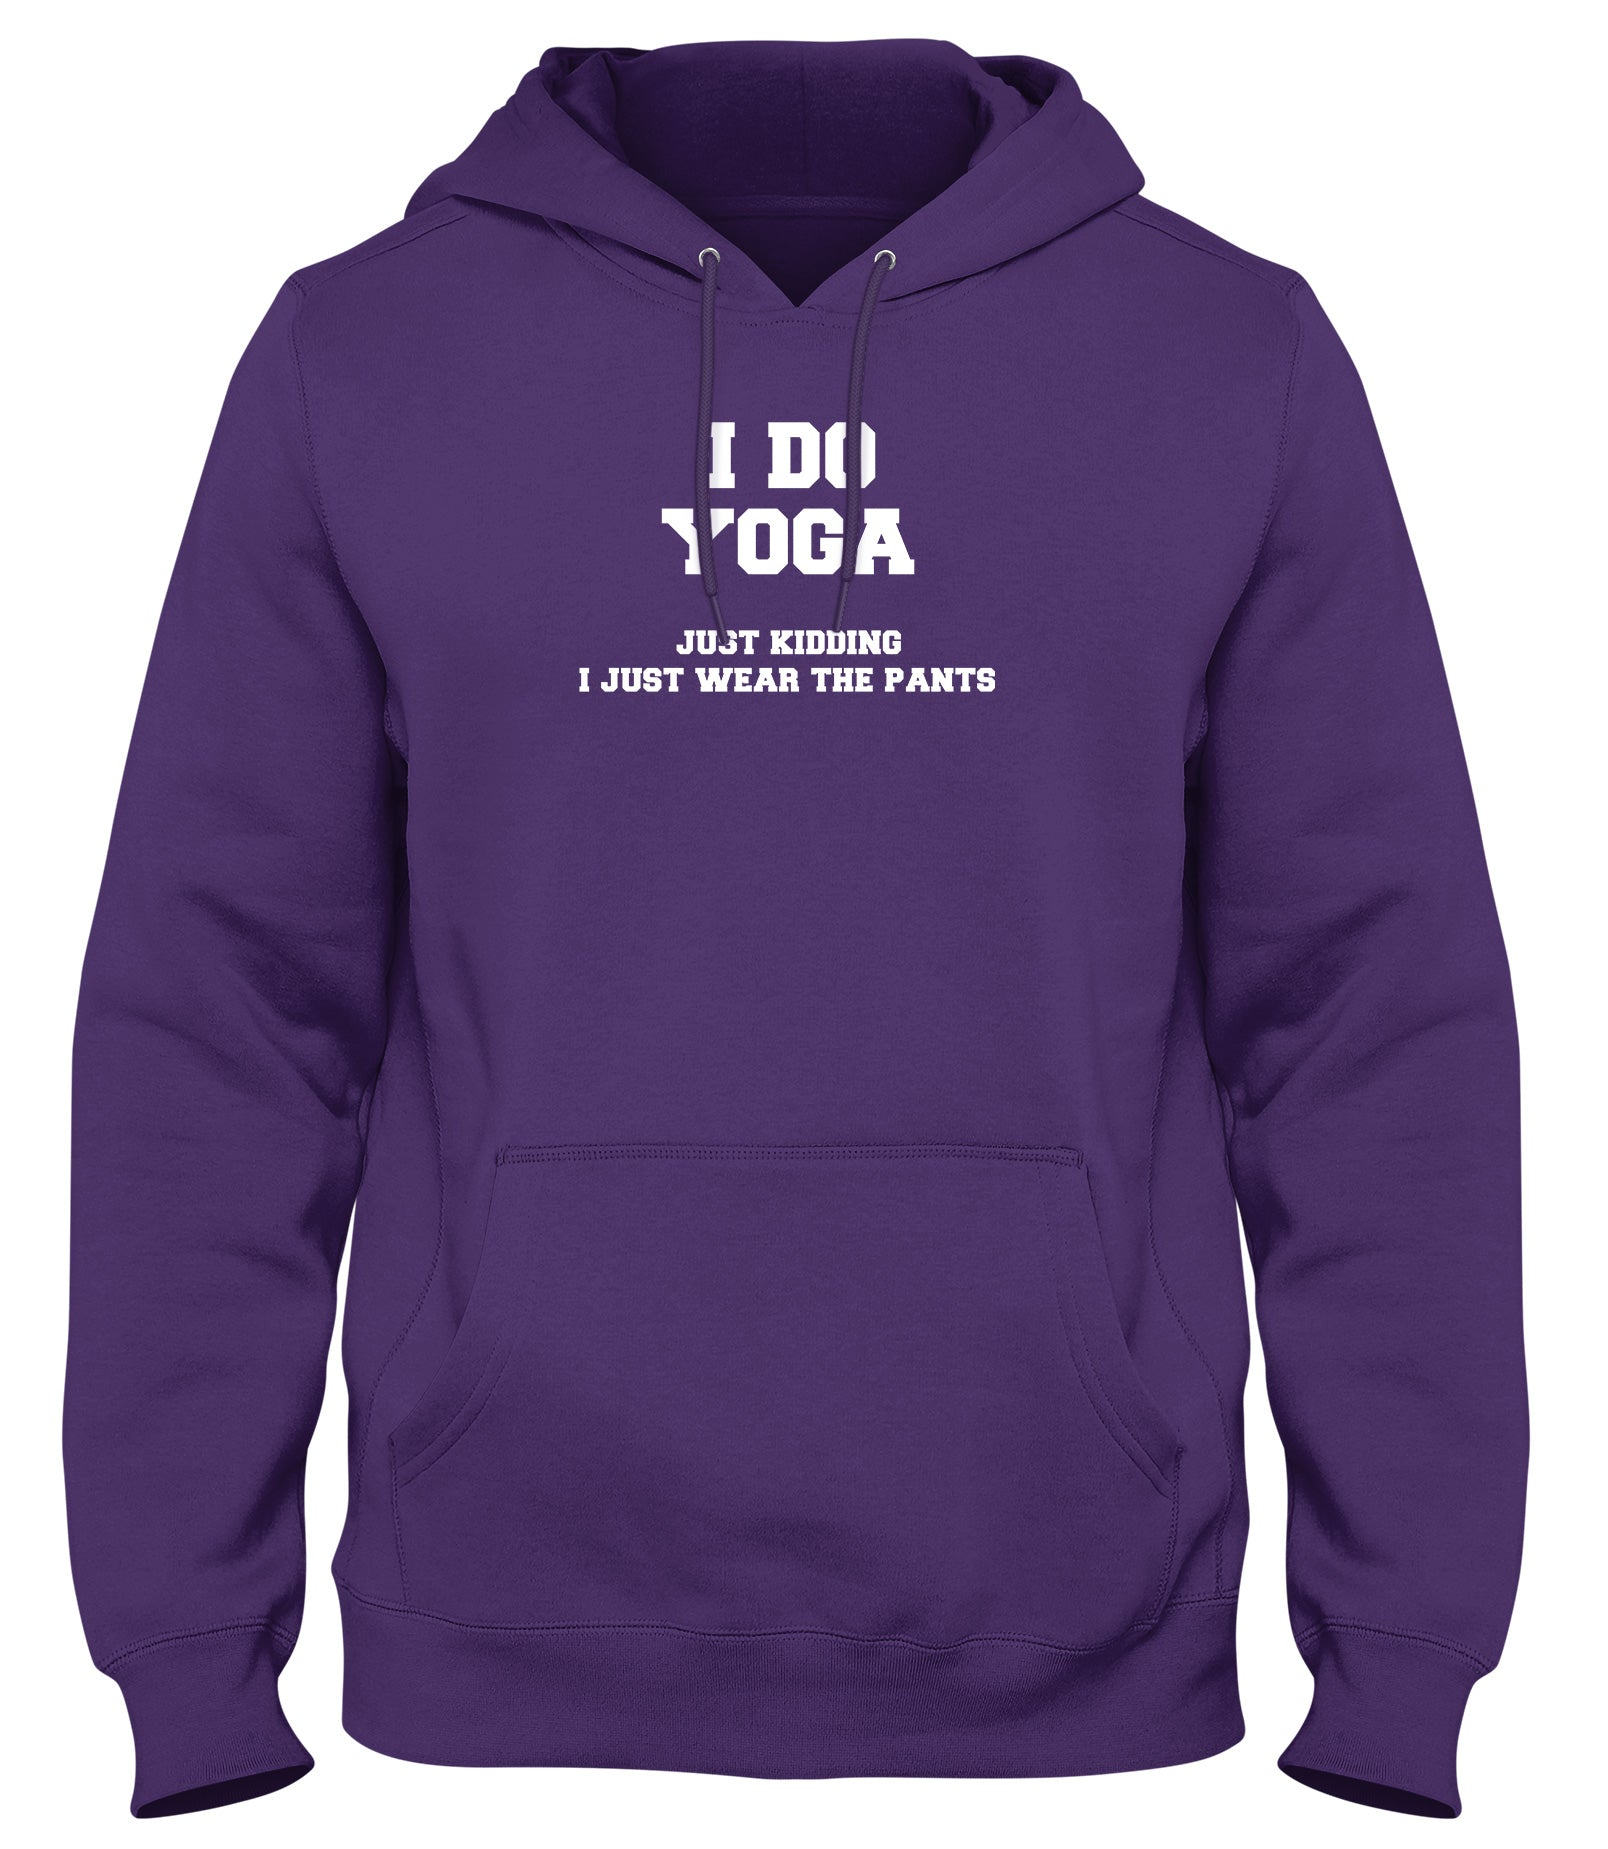 I DO YOGA. JUST KIDDING  I JUST WEAR THE PANTS WOMENS LADIES MENS UNISEX HOODIE